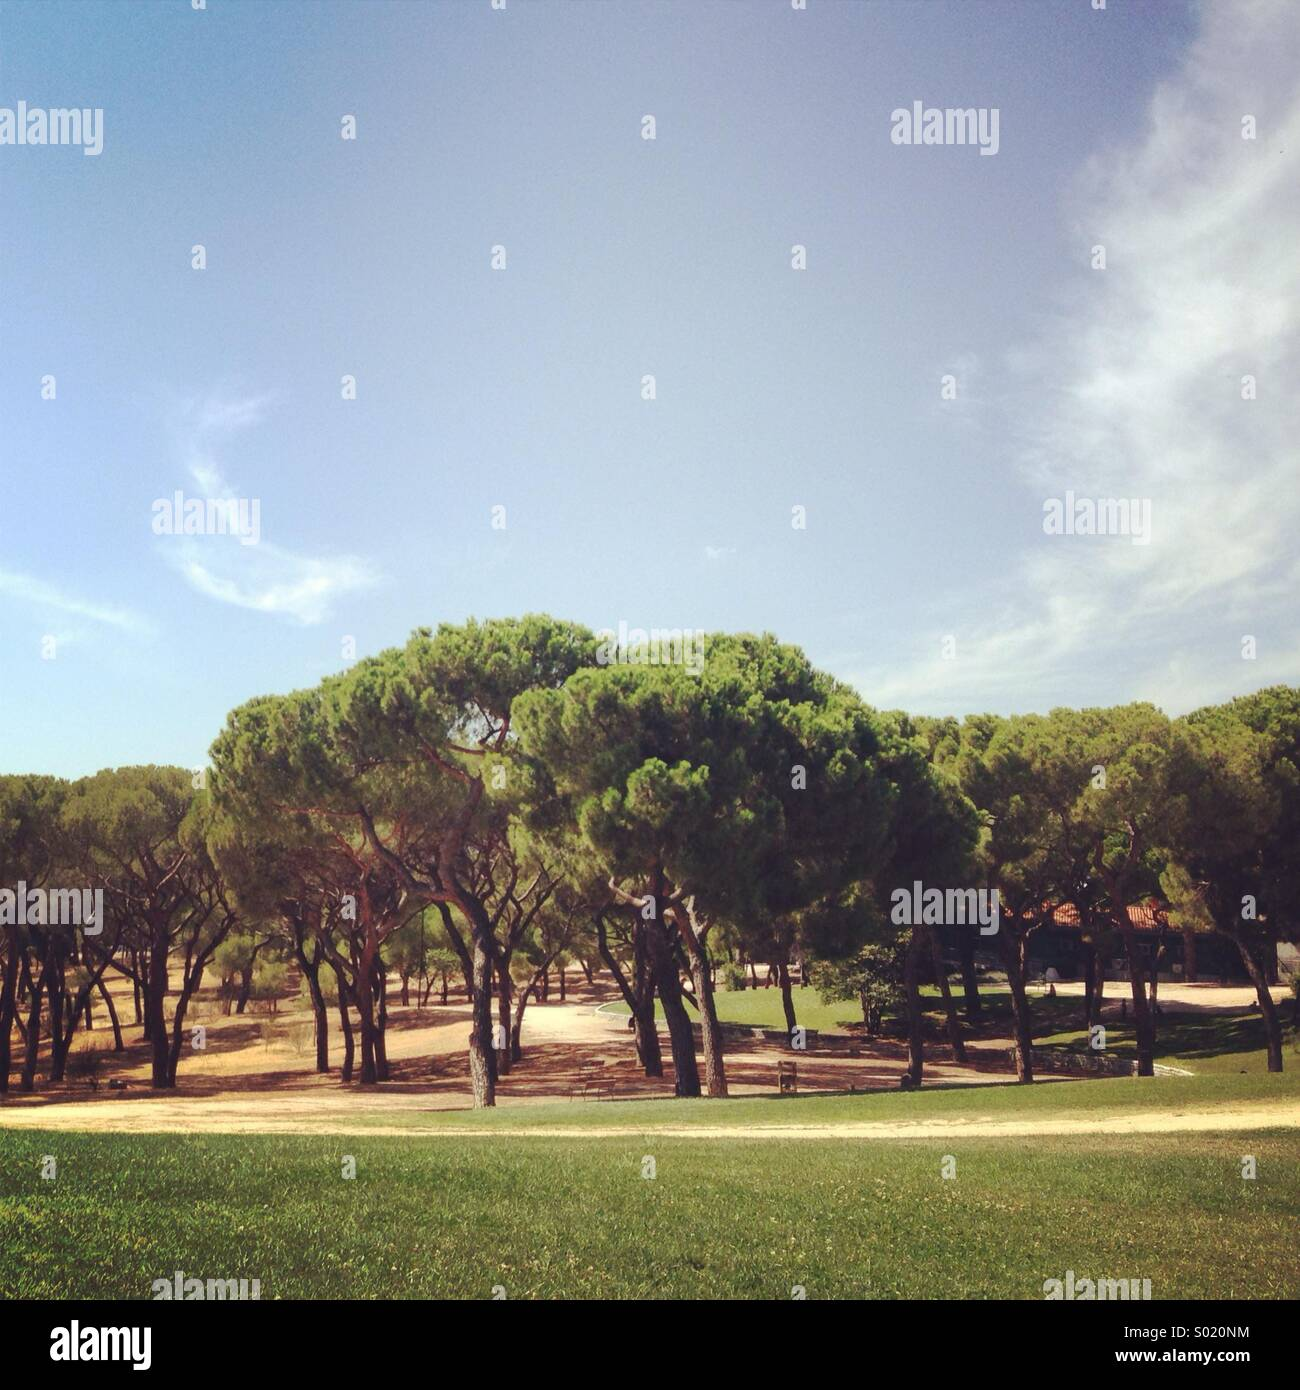 Tree landscape in a sunny day - Stock Image